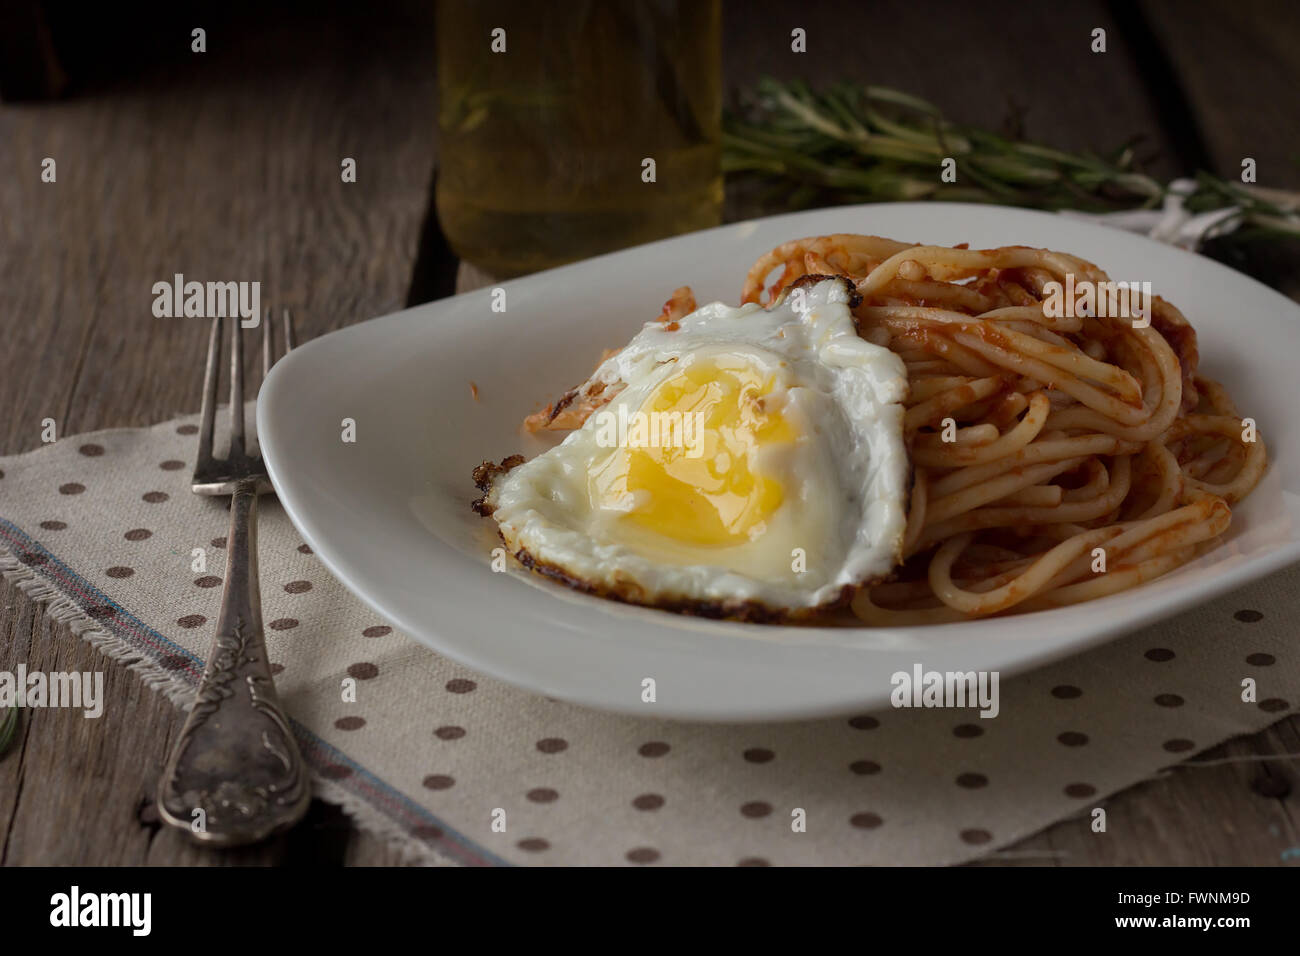 Spaghetti with tomato paste and fried egg selective focus - Stock Image